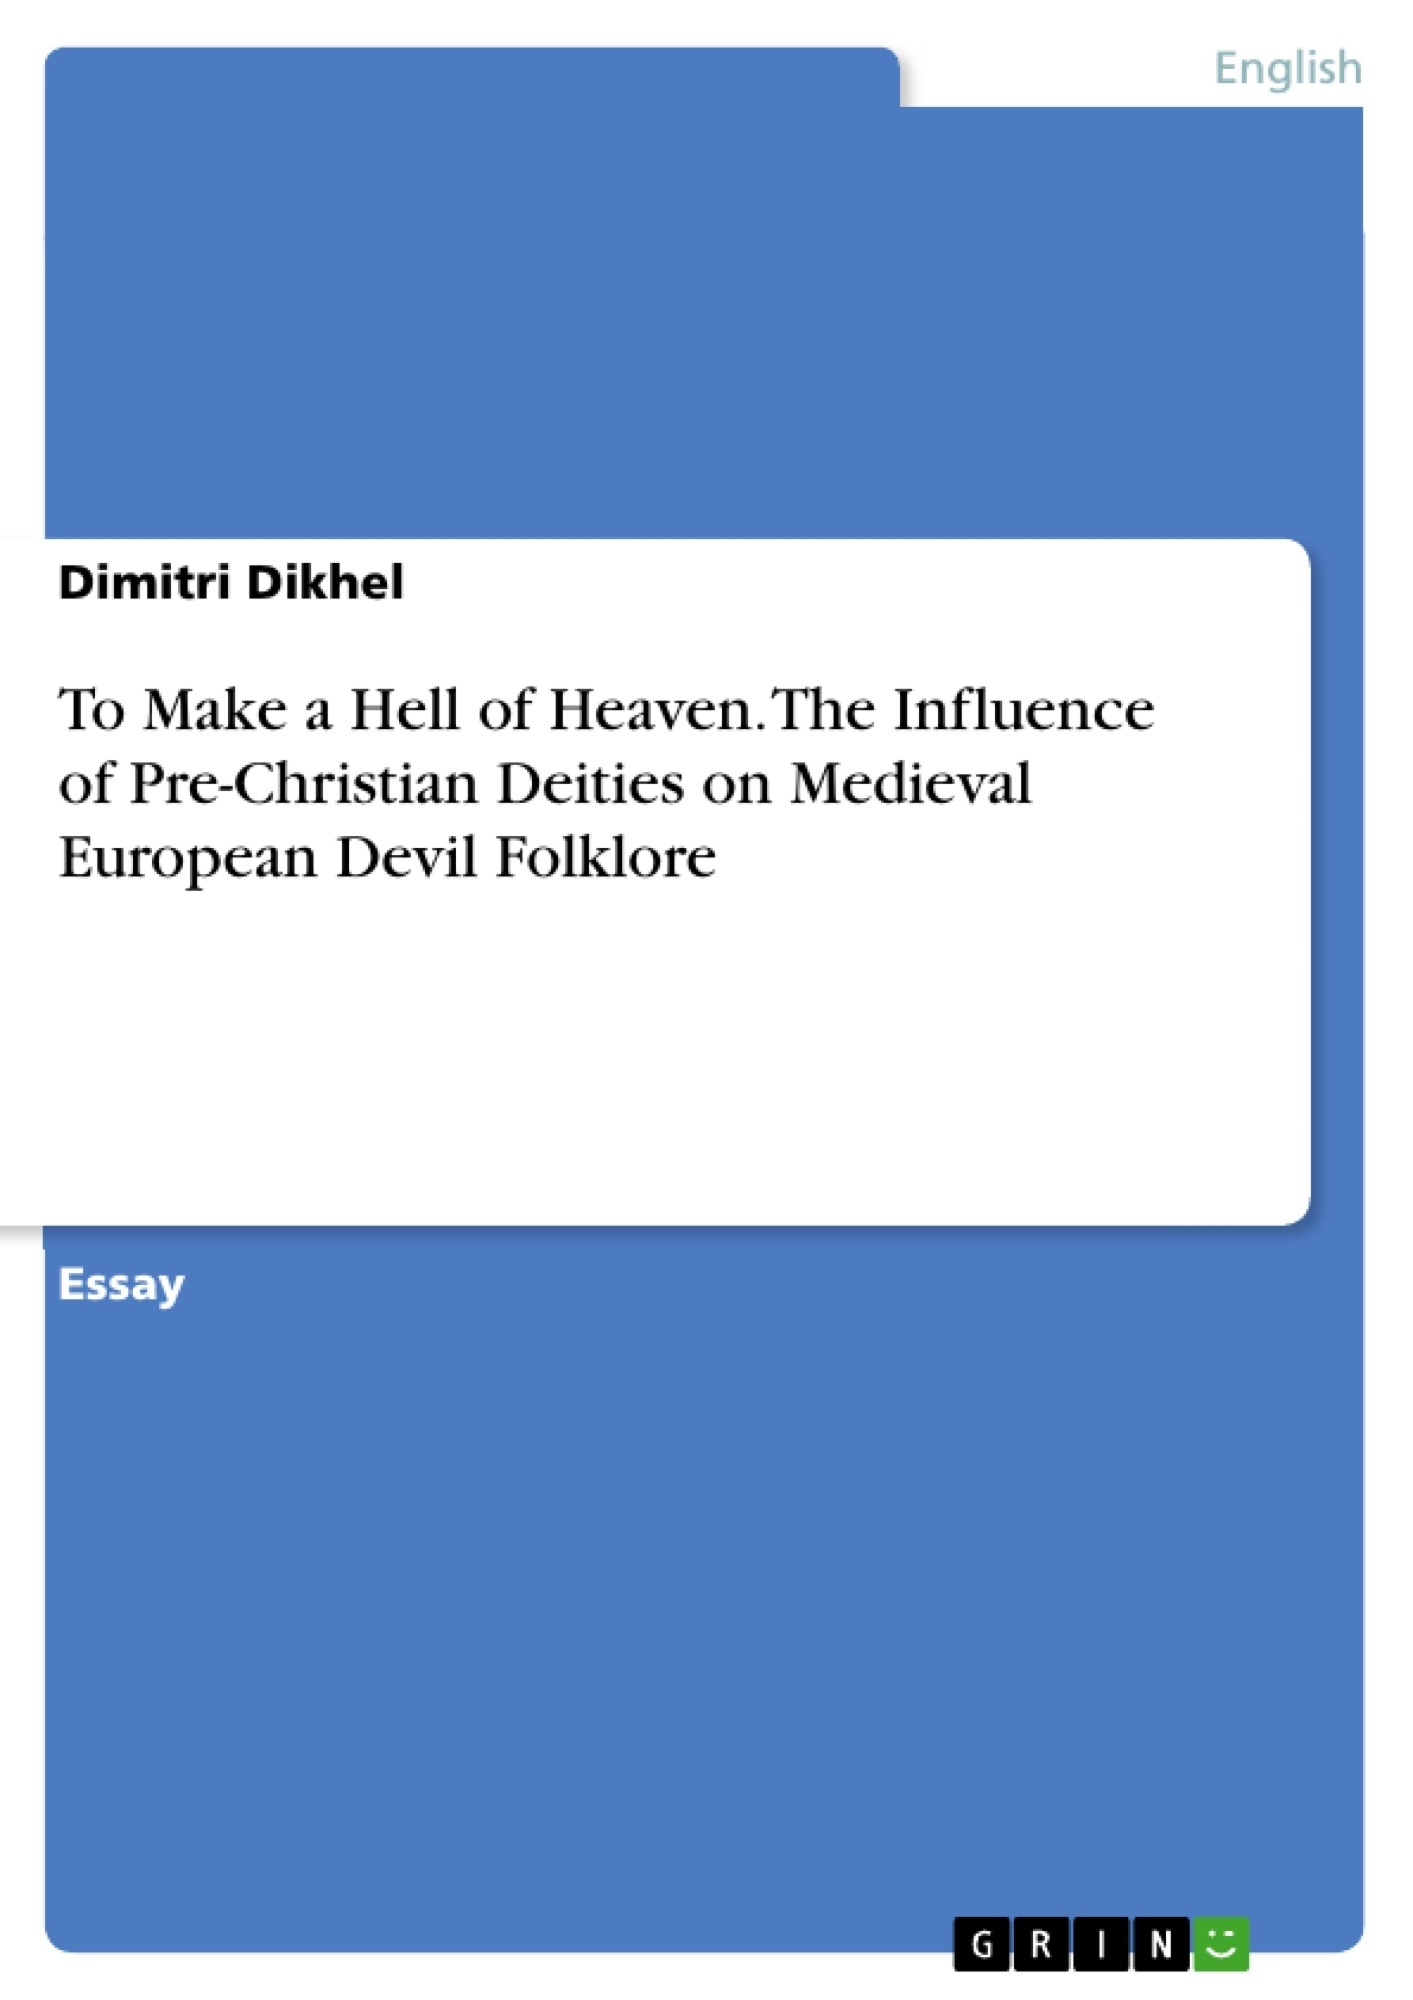 Title: To Make a Hell of Heaven. The Influence of Pre-Christian Deities on Medieval European Devil Folklore